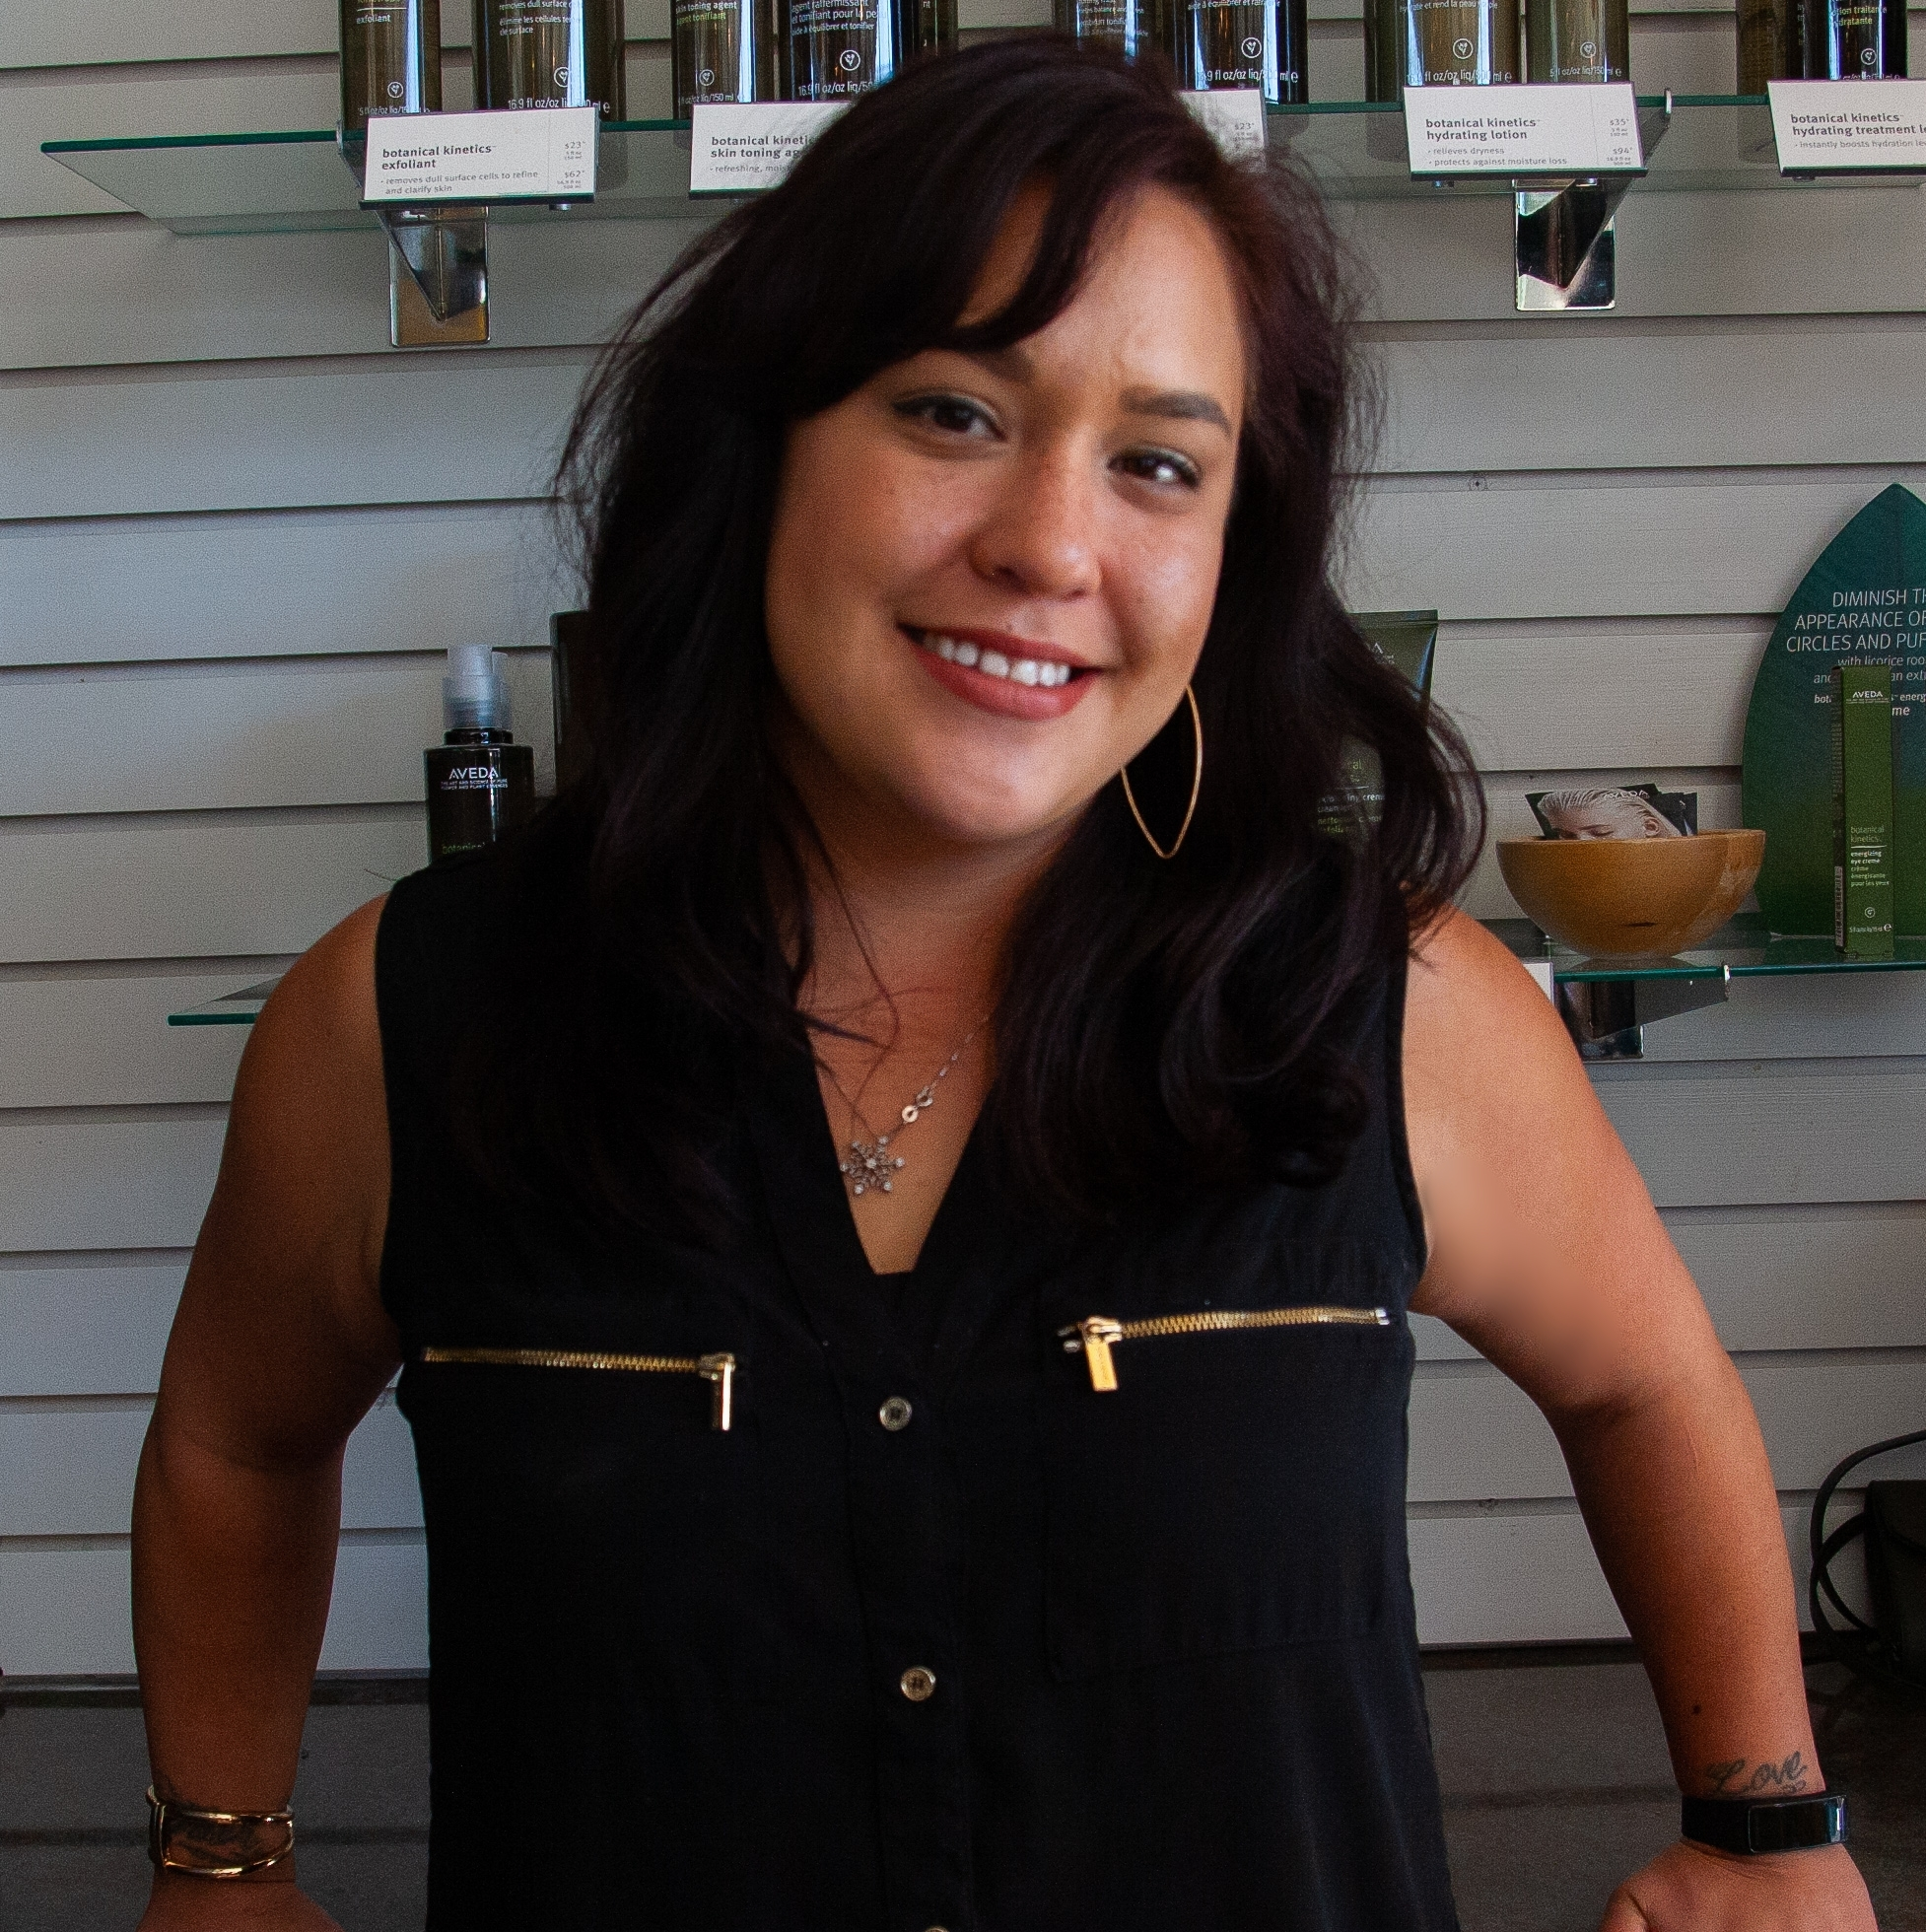 Chris - Want crazy fun color?! ... Chris loves that! She loves to indulge hair fantasy with her Aveda eclipting skills. Another fun thing about Chris is her passion for artistic barbering and men's cuts. Her clean lines make any man look just a little more dapper.